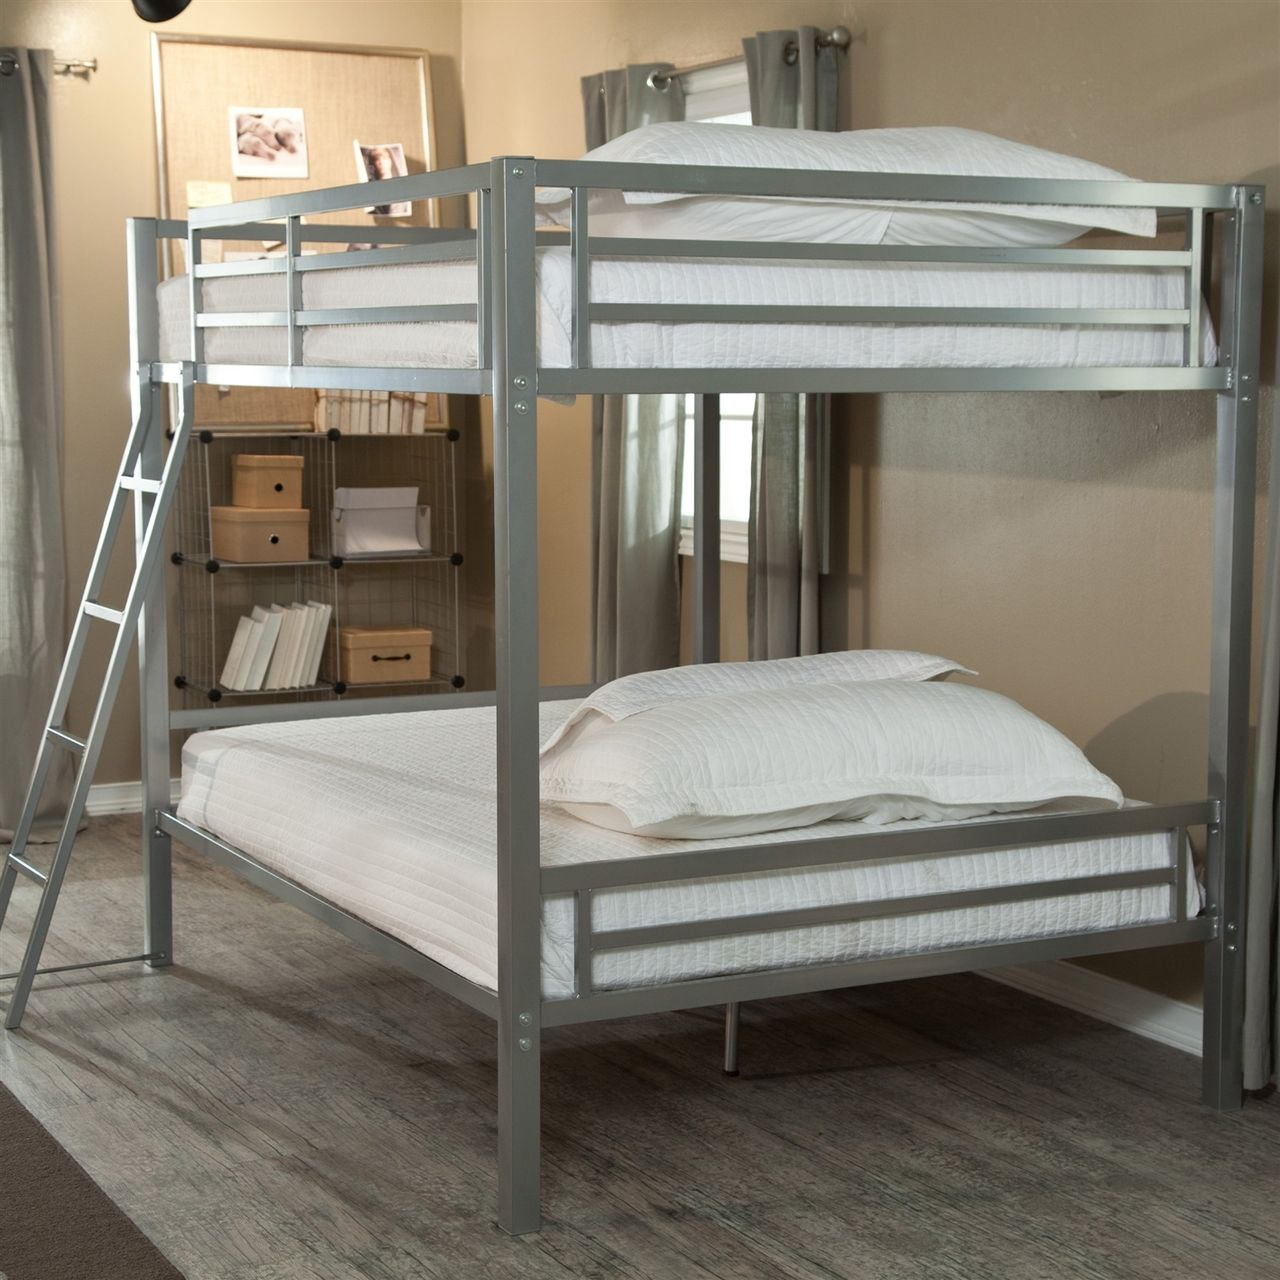 Best Full Over Full Bunk Bed With Ladder In Silver Metal Finish 400 x 300